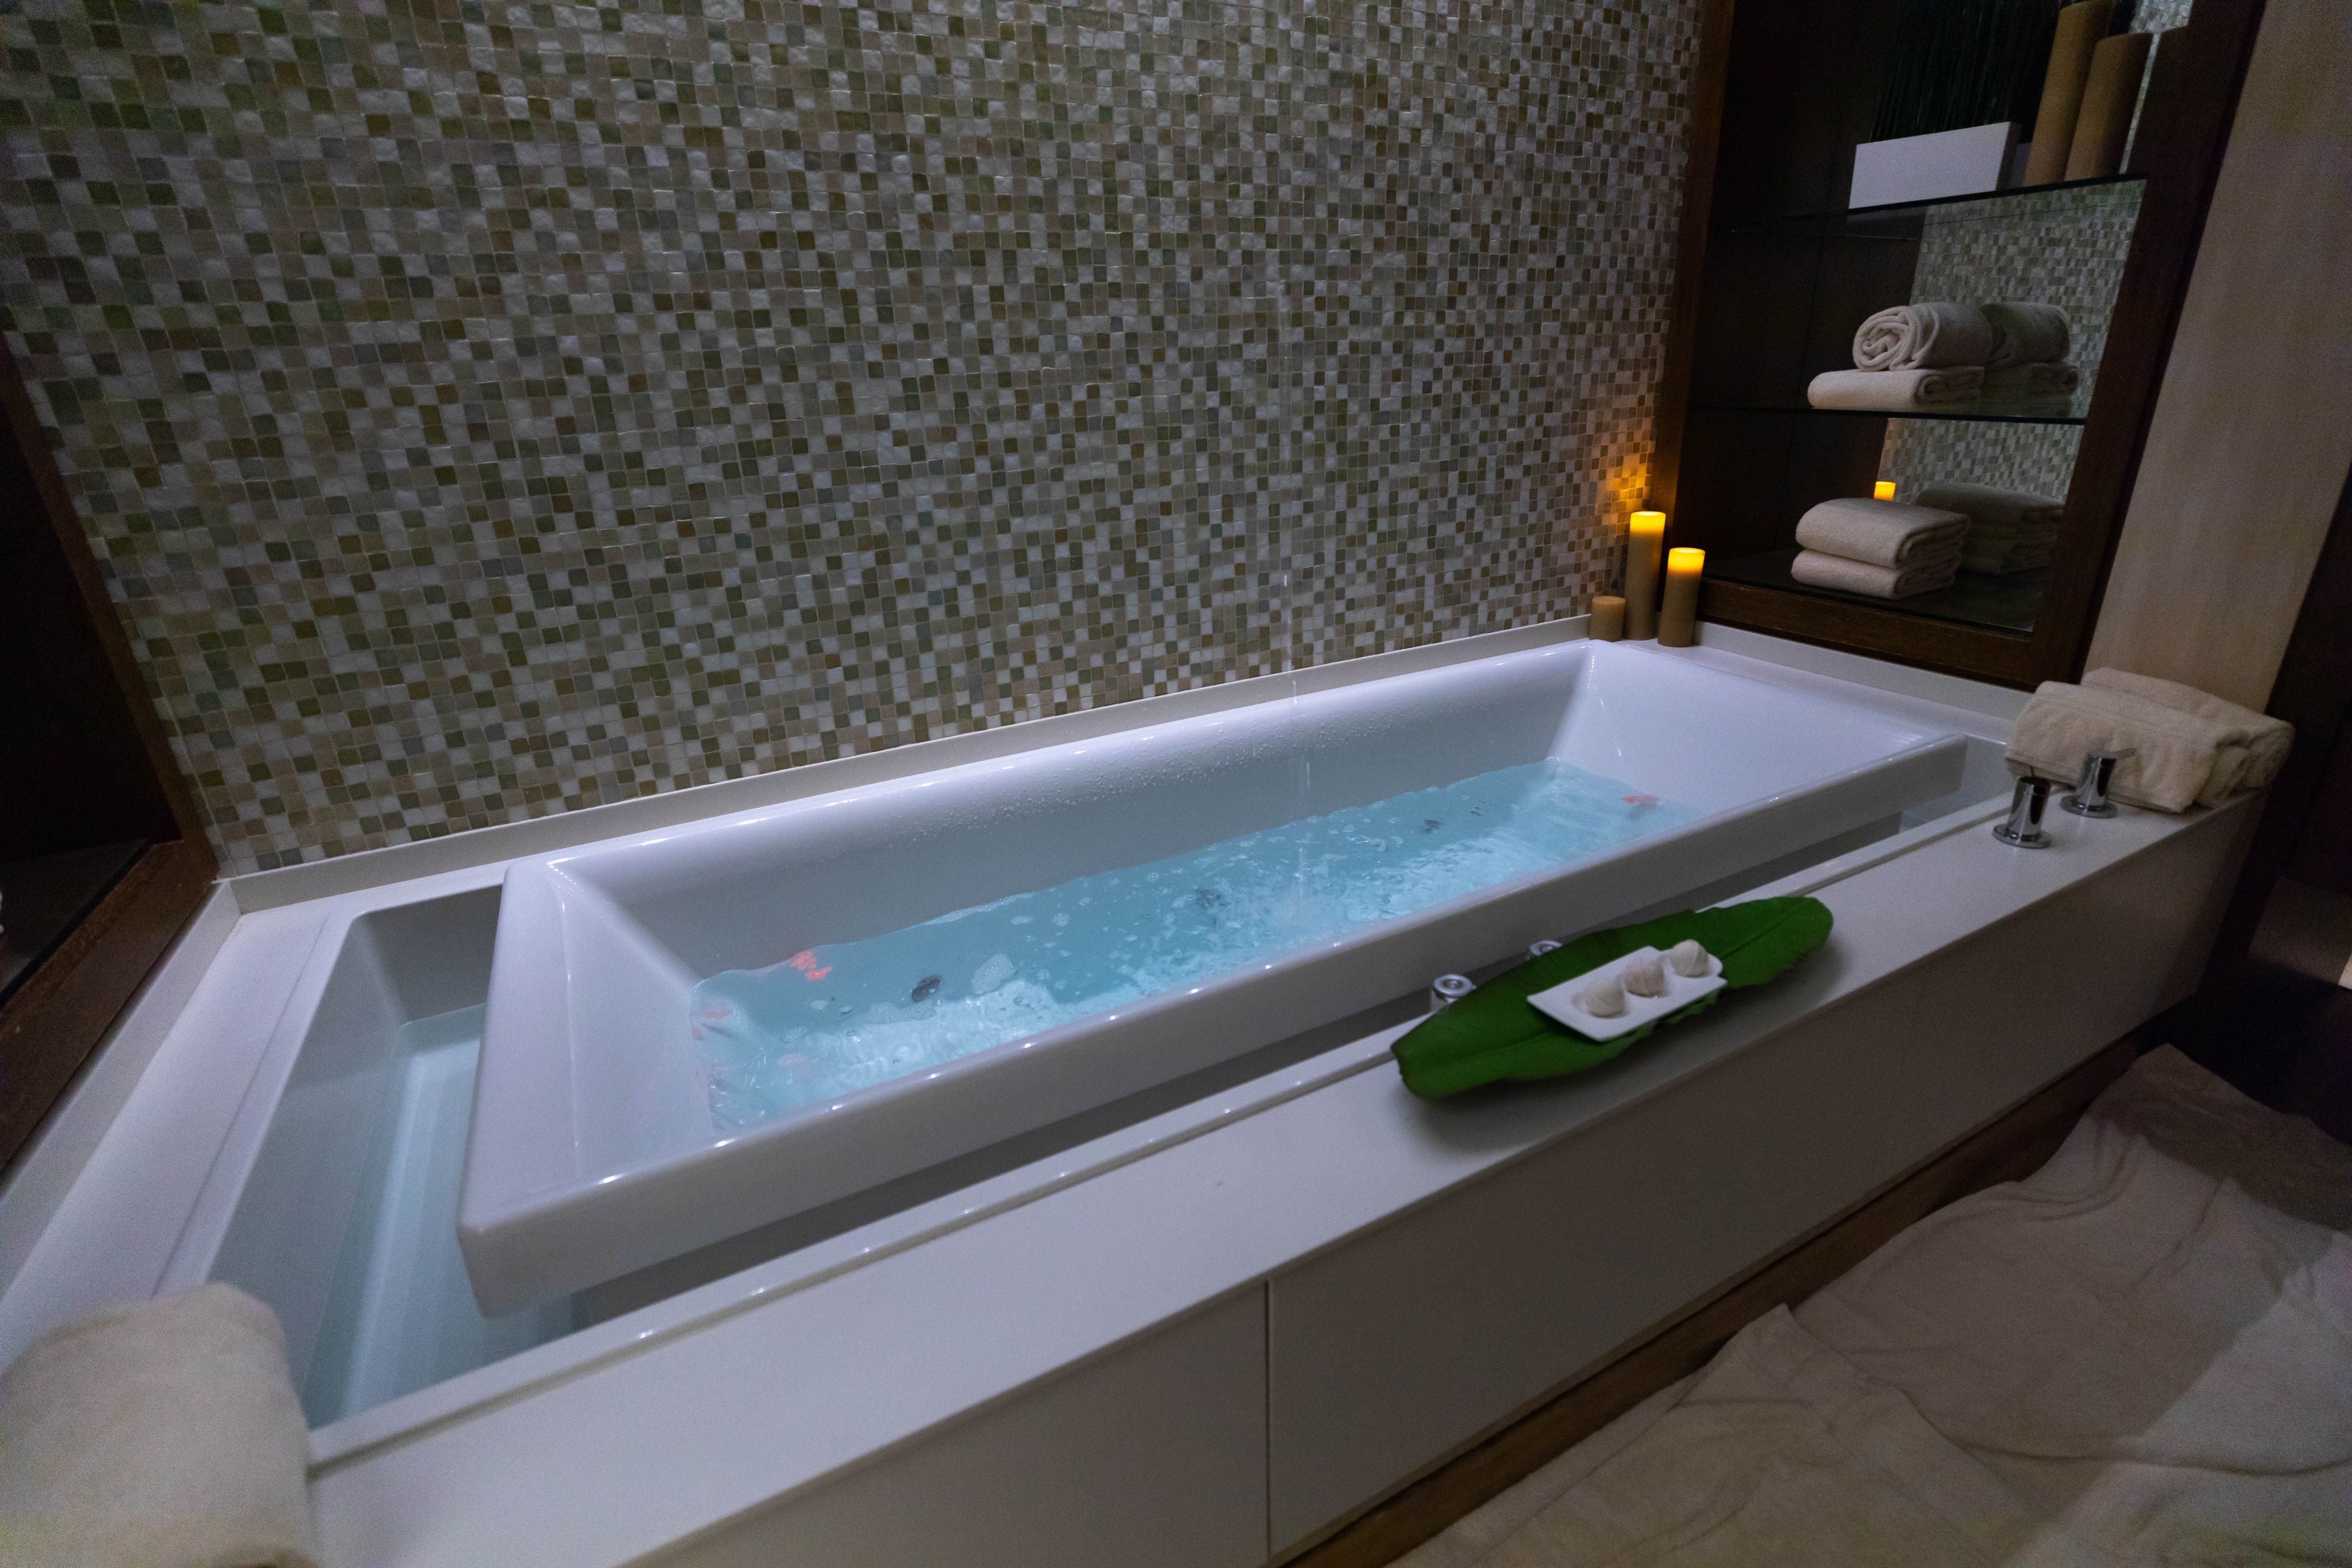 Fairmont Chicago Millennium Park mySpa Luxury Spa Treatments